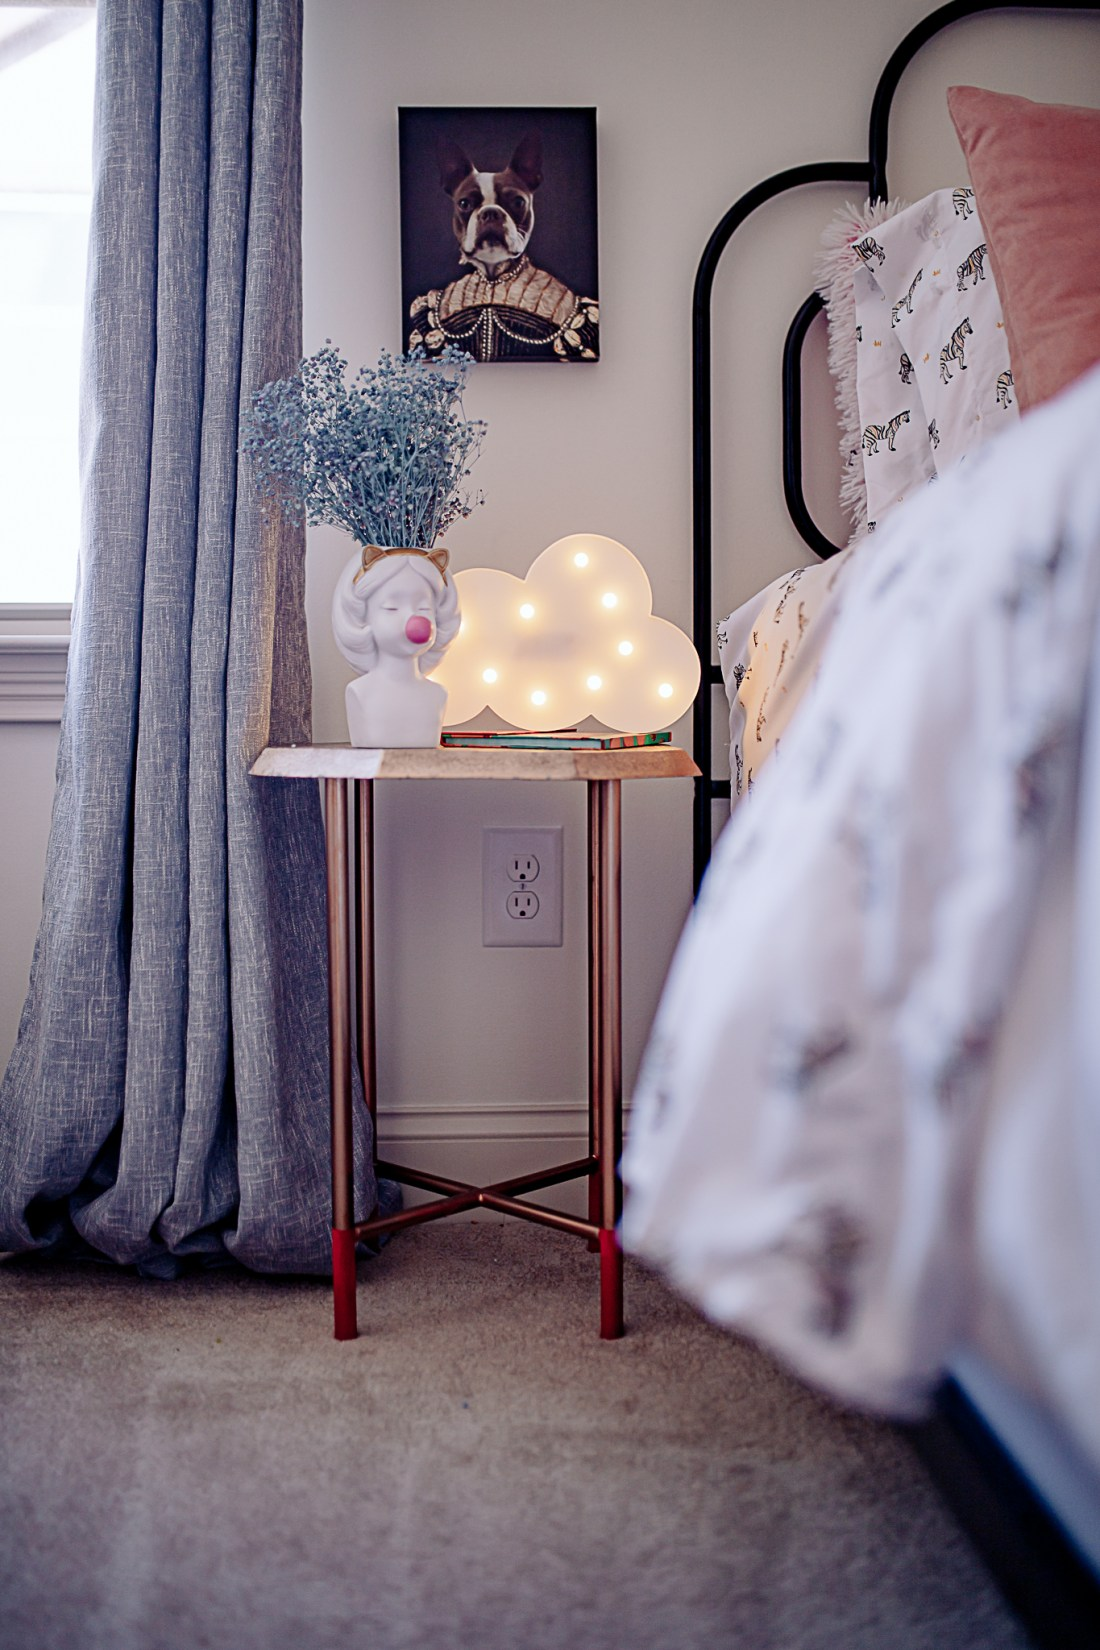 Kids Room by popular Nashville life and style blog, Modern Day Moguls: image of a gold nightstand decorated with a cloud lamp and white ceramic flower vase of a girl blowing a pink bubble.